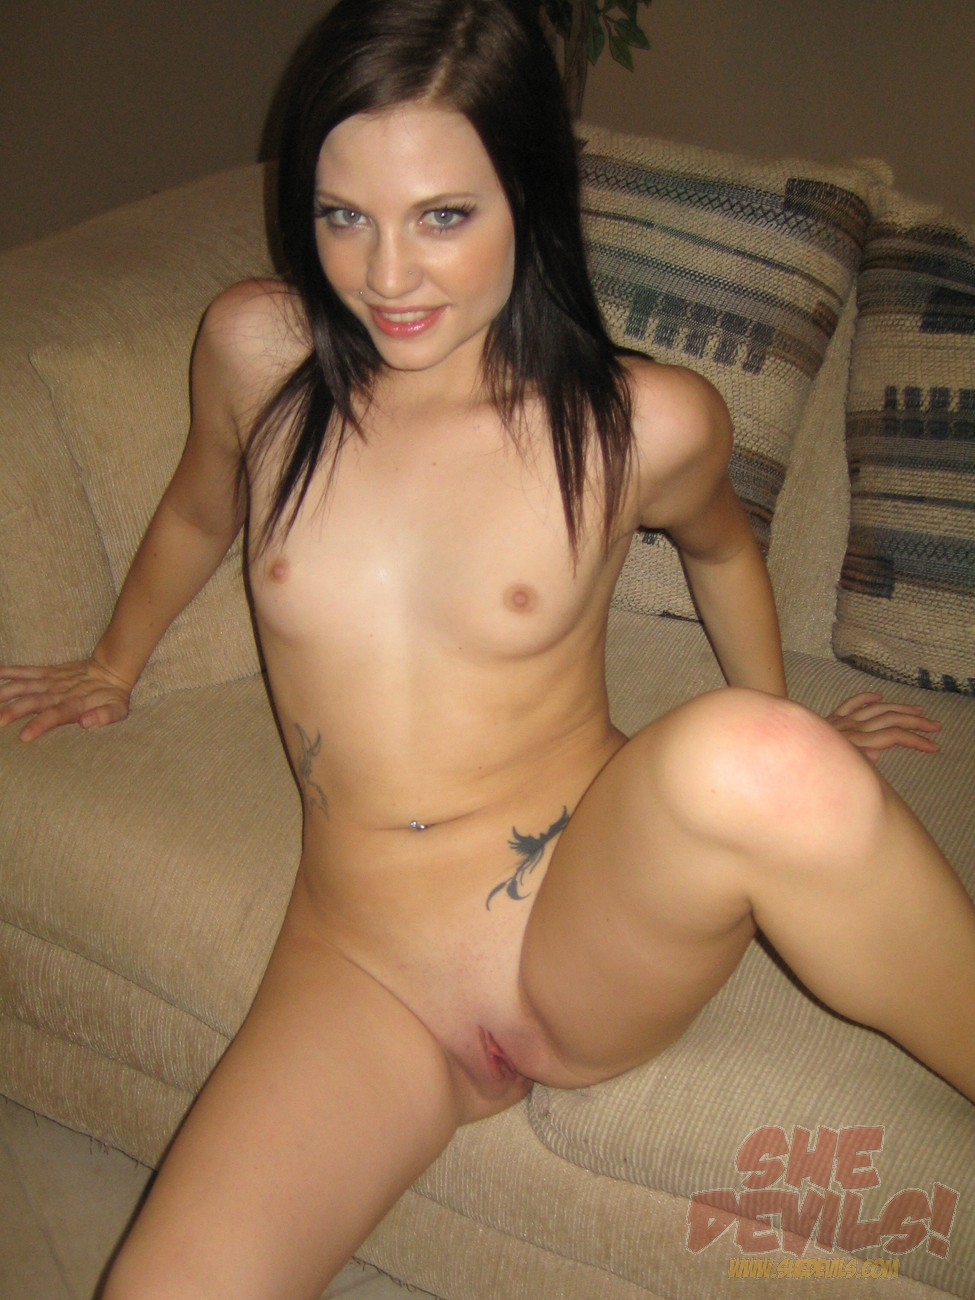 Skinny petite nude self shot pic can believe